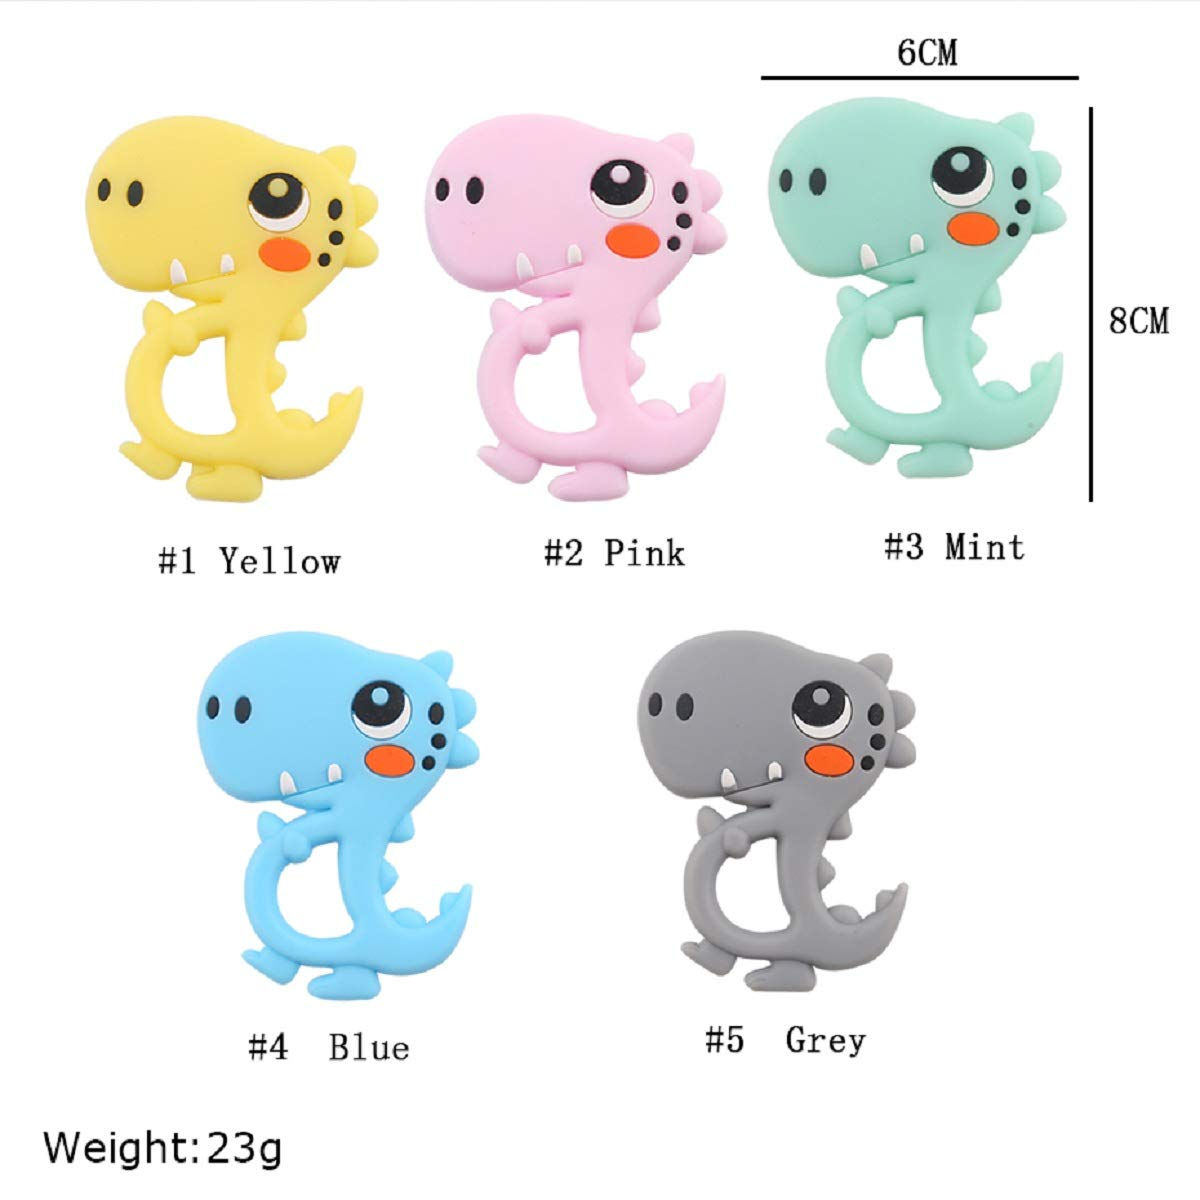 Biter teether 5pcs Silicone Baby Teether Toy Dinosaur Pendant Necklace Teething Chew Toys Accessory BPA Free Soothing Teether